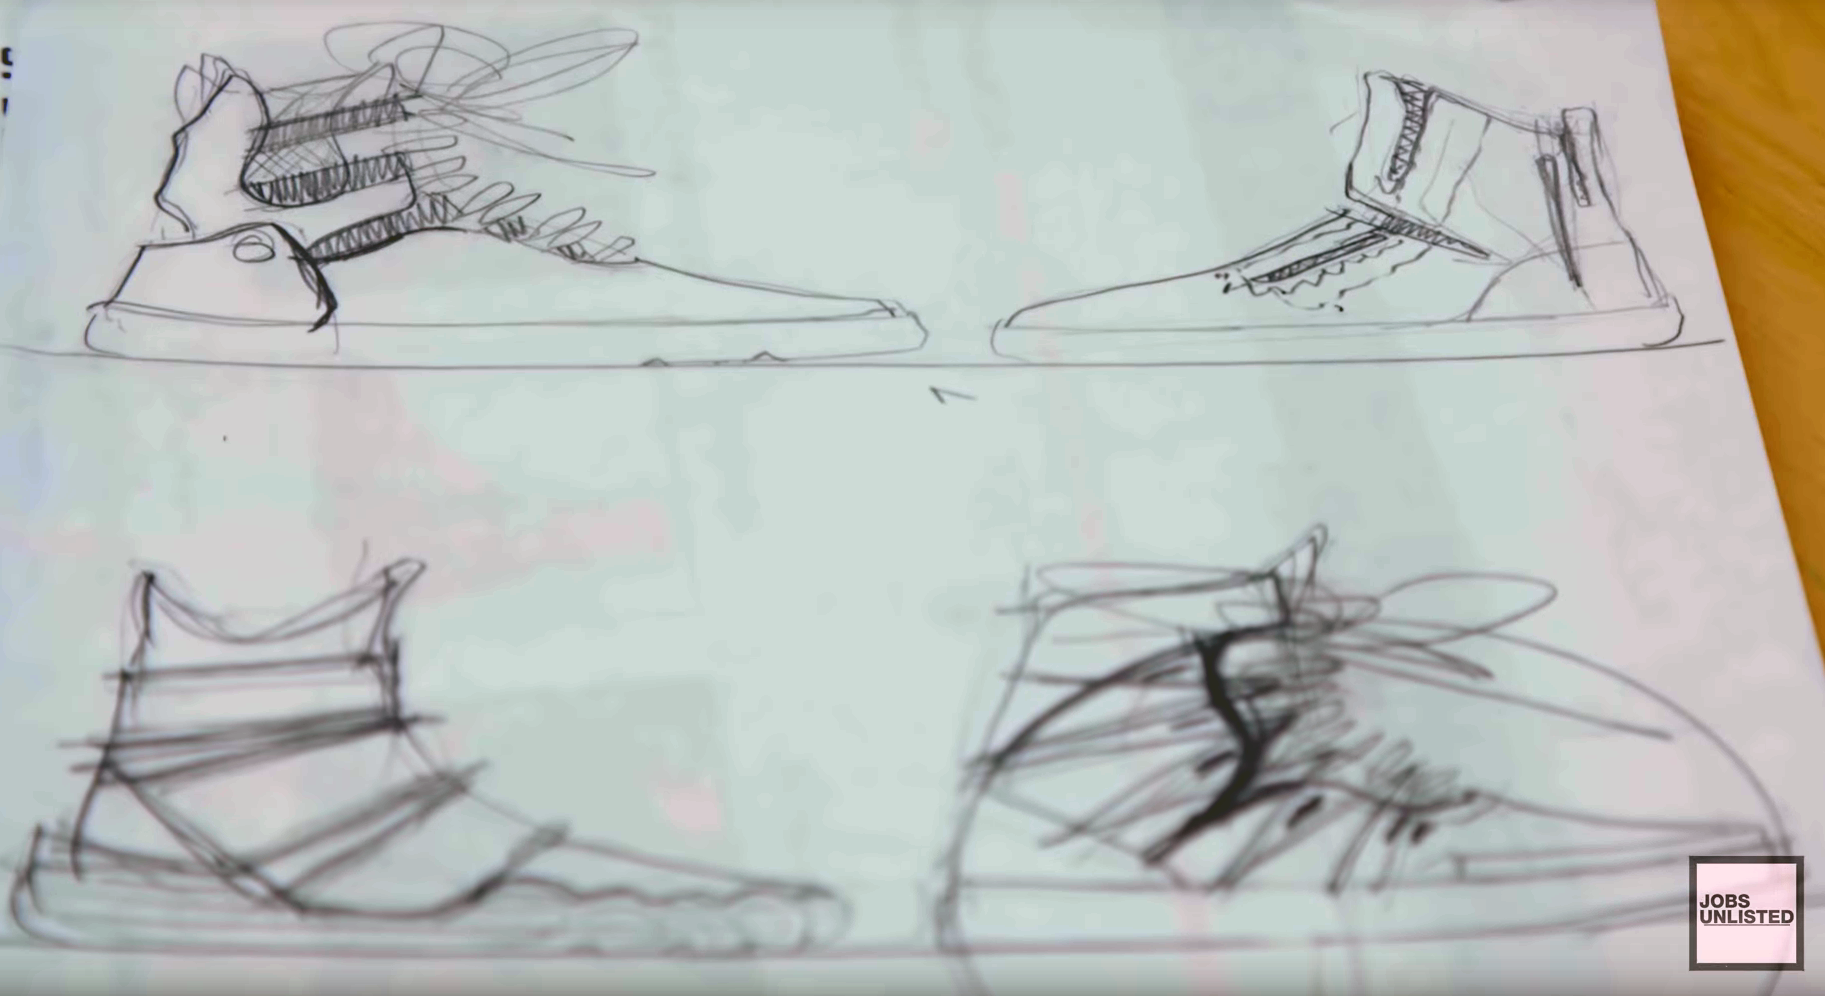 Via Complex: How To Be A Sneaker Designer For Nike and Jordan Brand